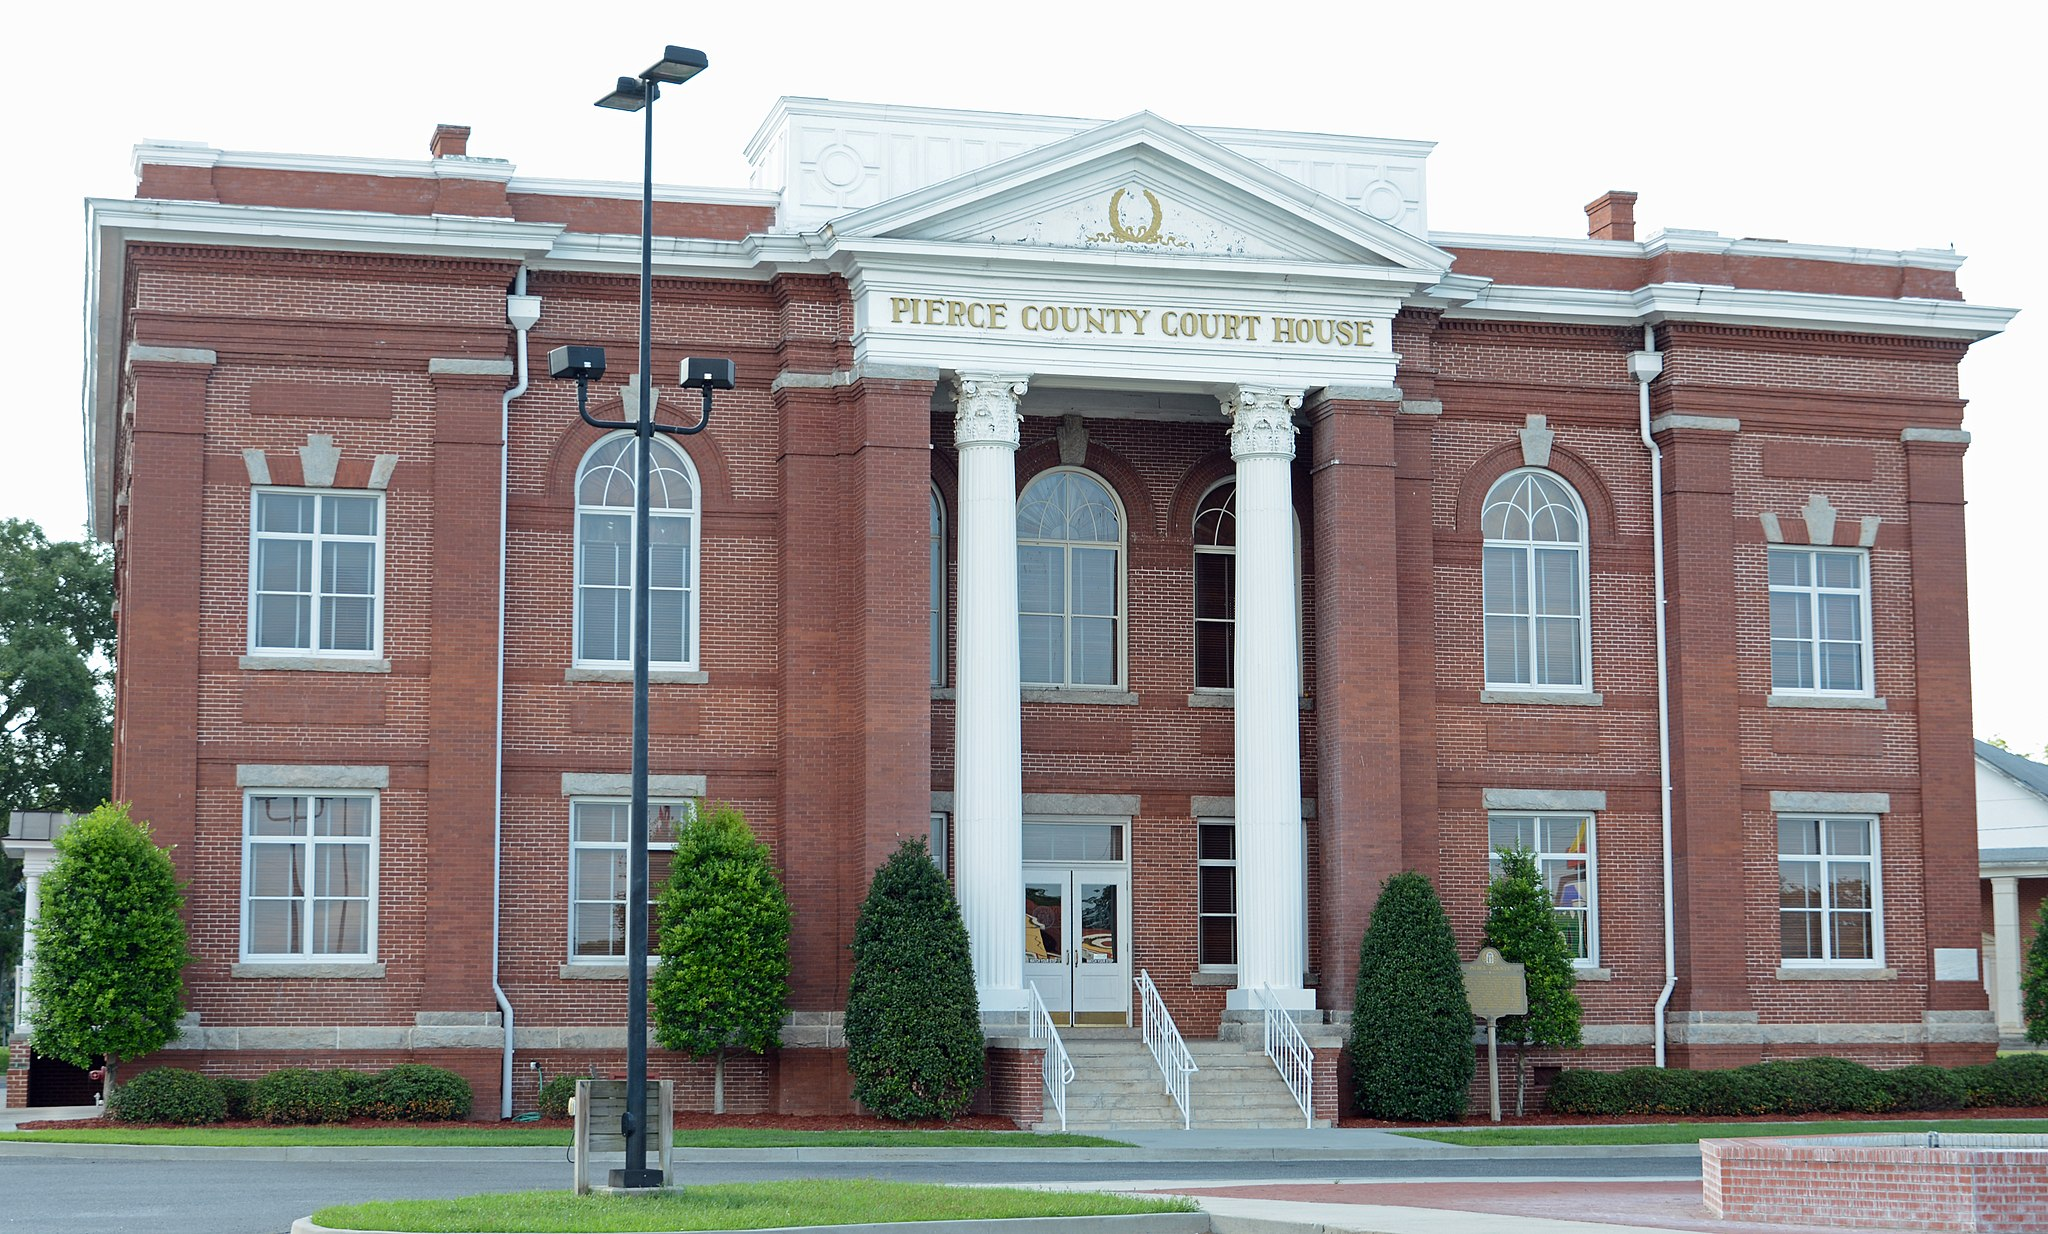 Pierce County Courthouse, Blackshear, GA, US